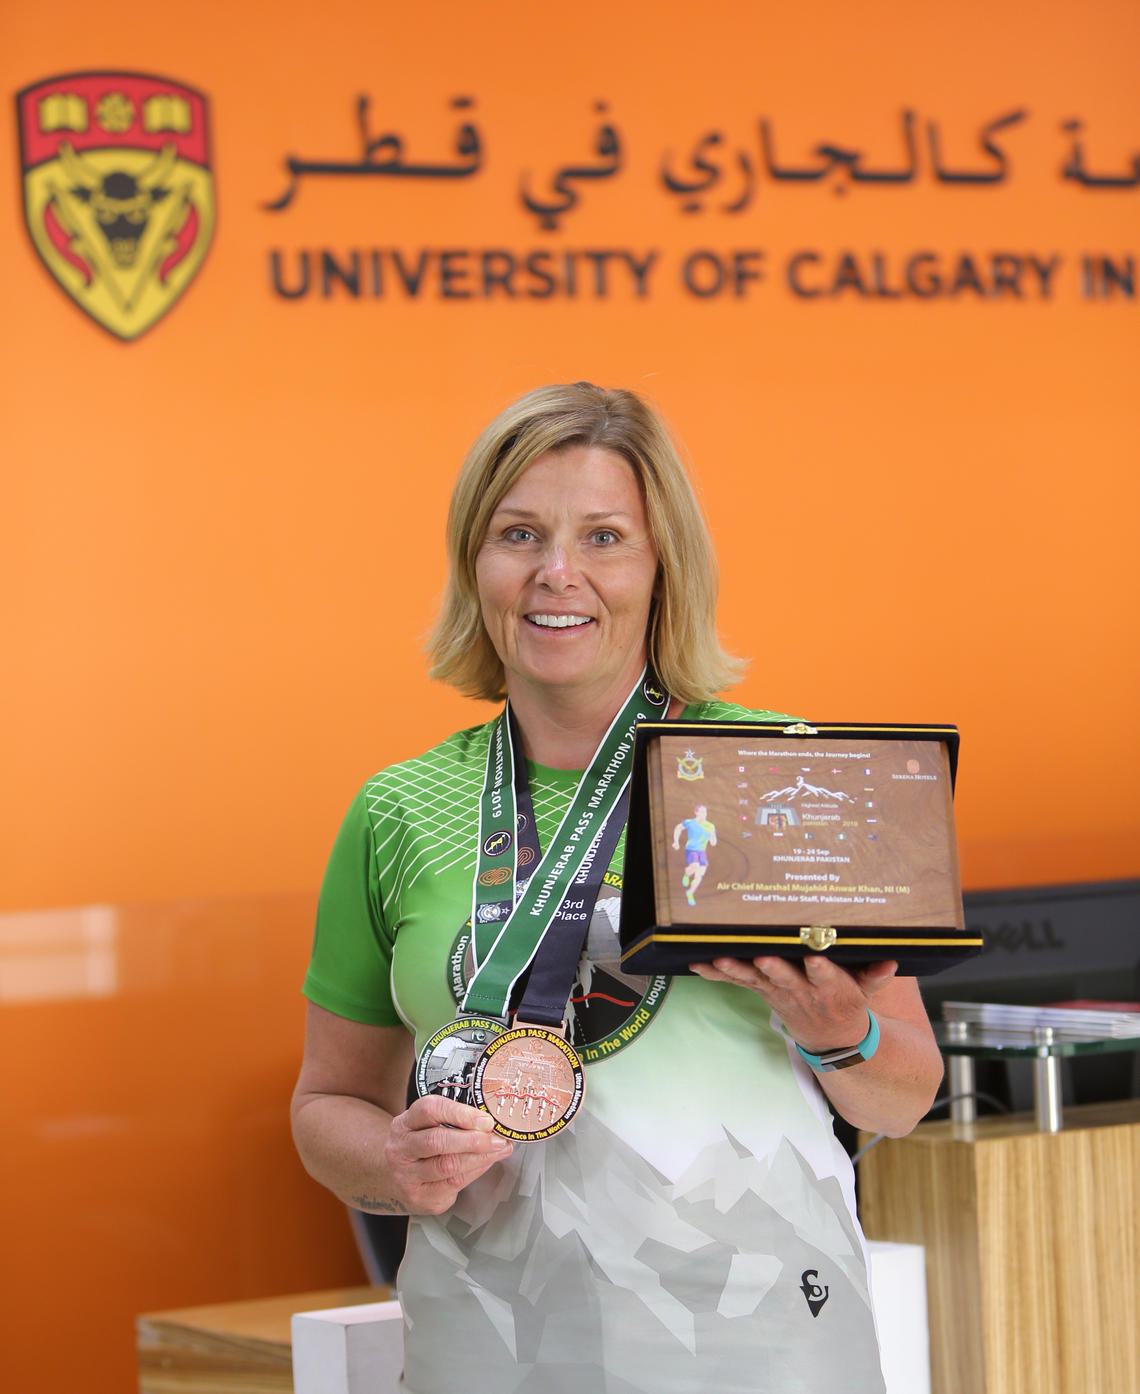 Donna Wood with medals